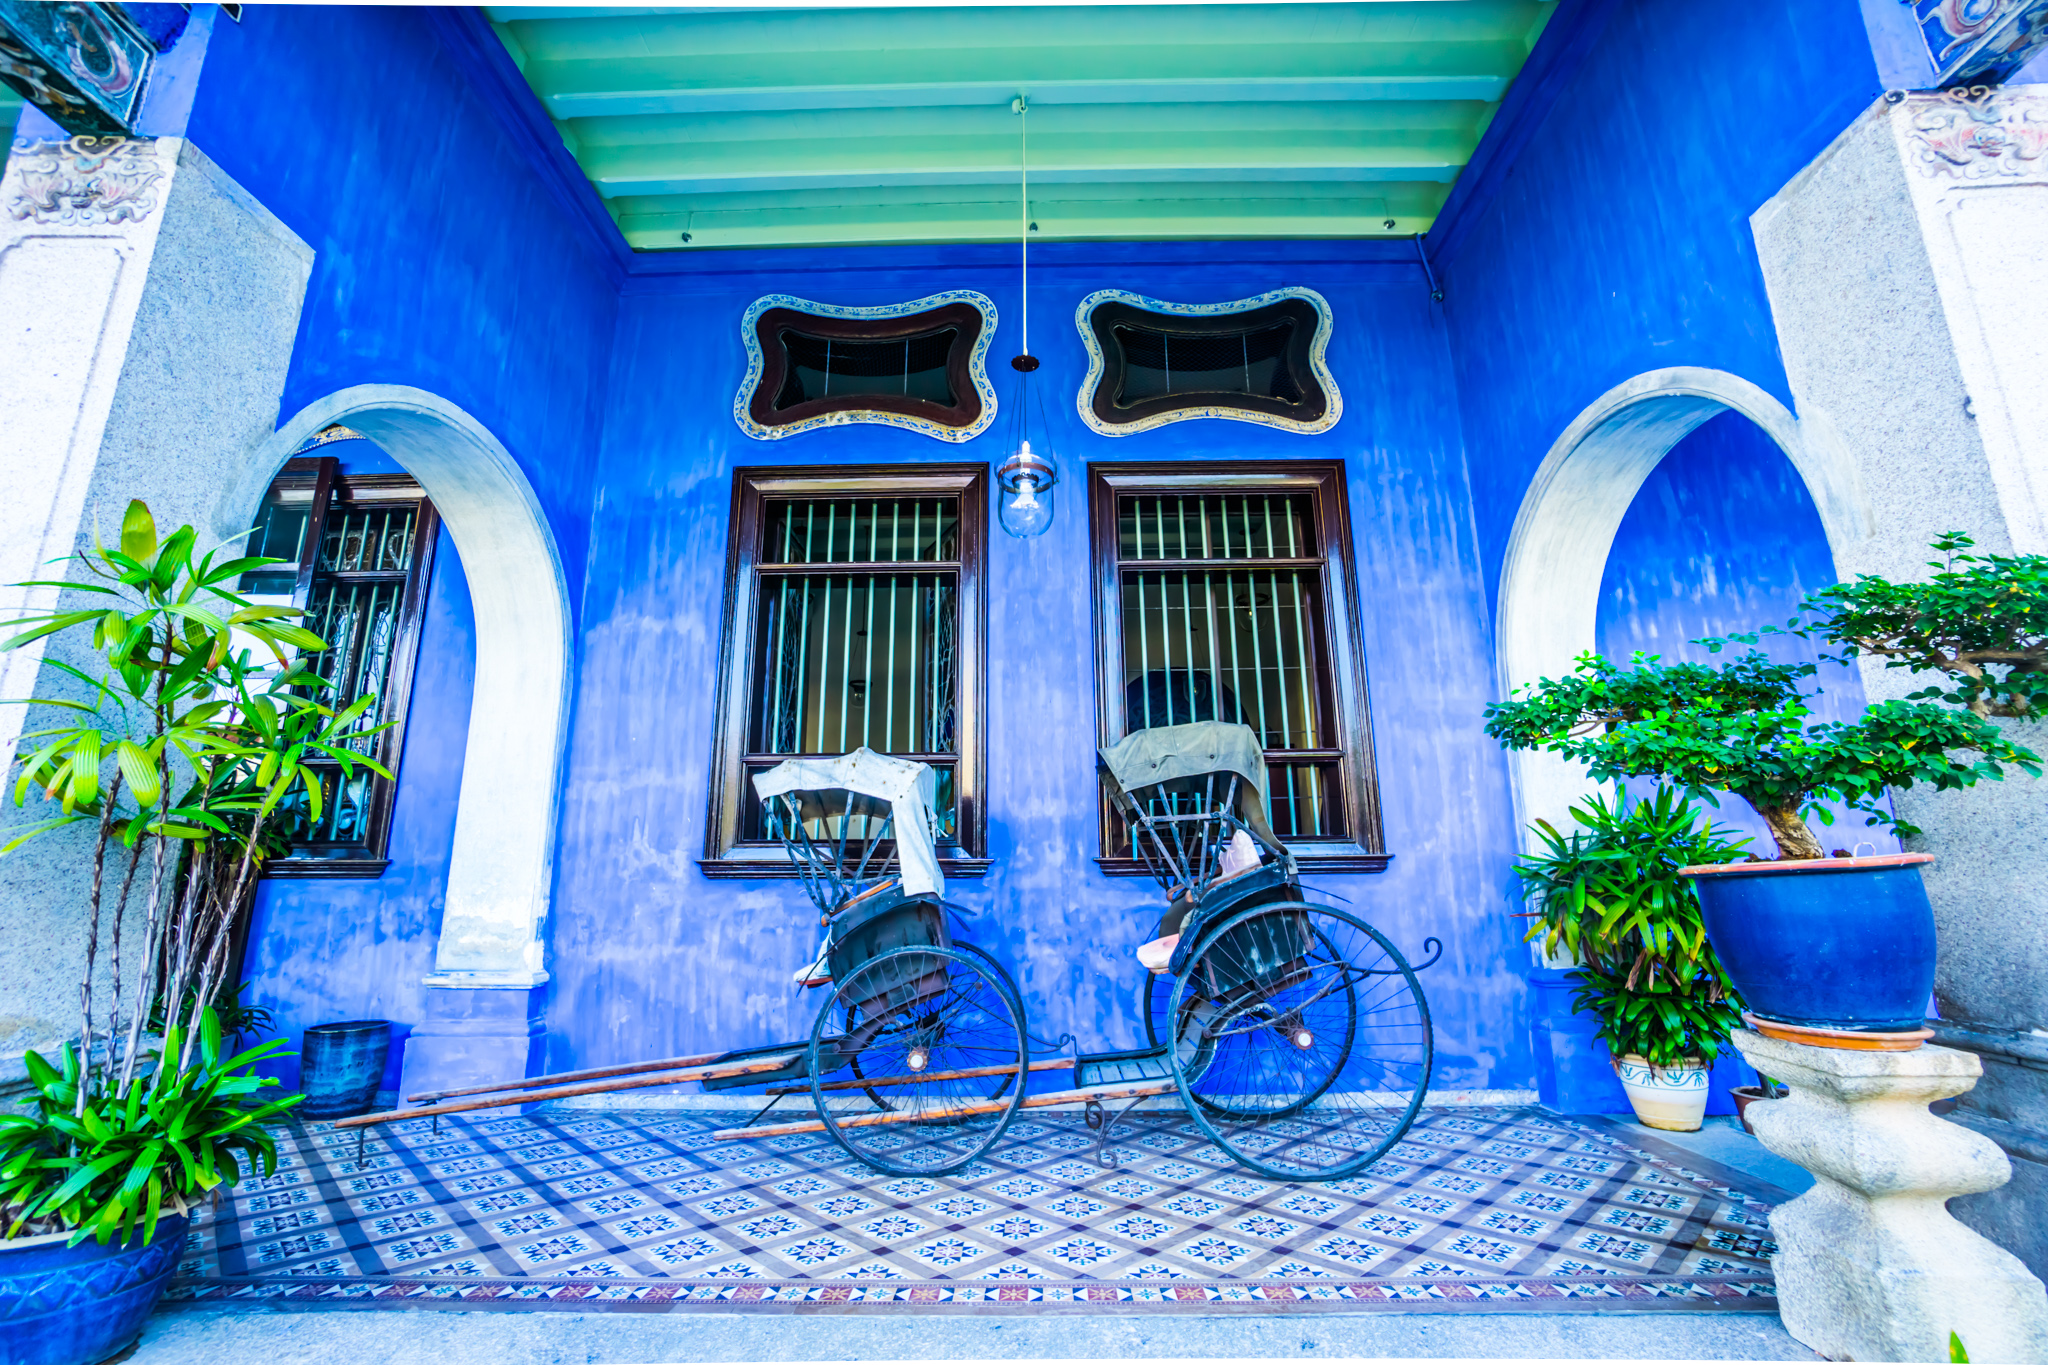 Penang The Blue Mansion featured image